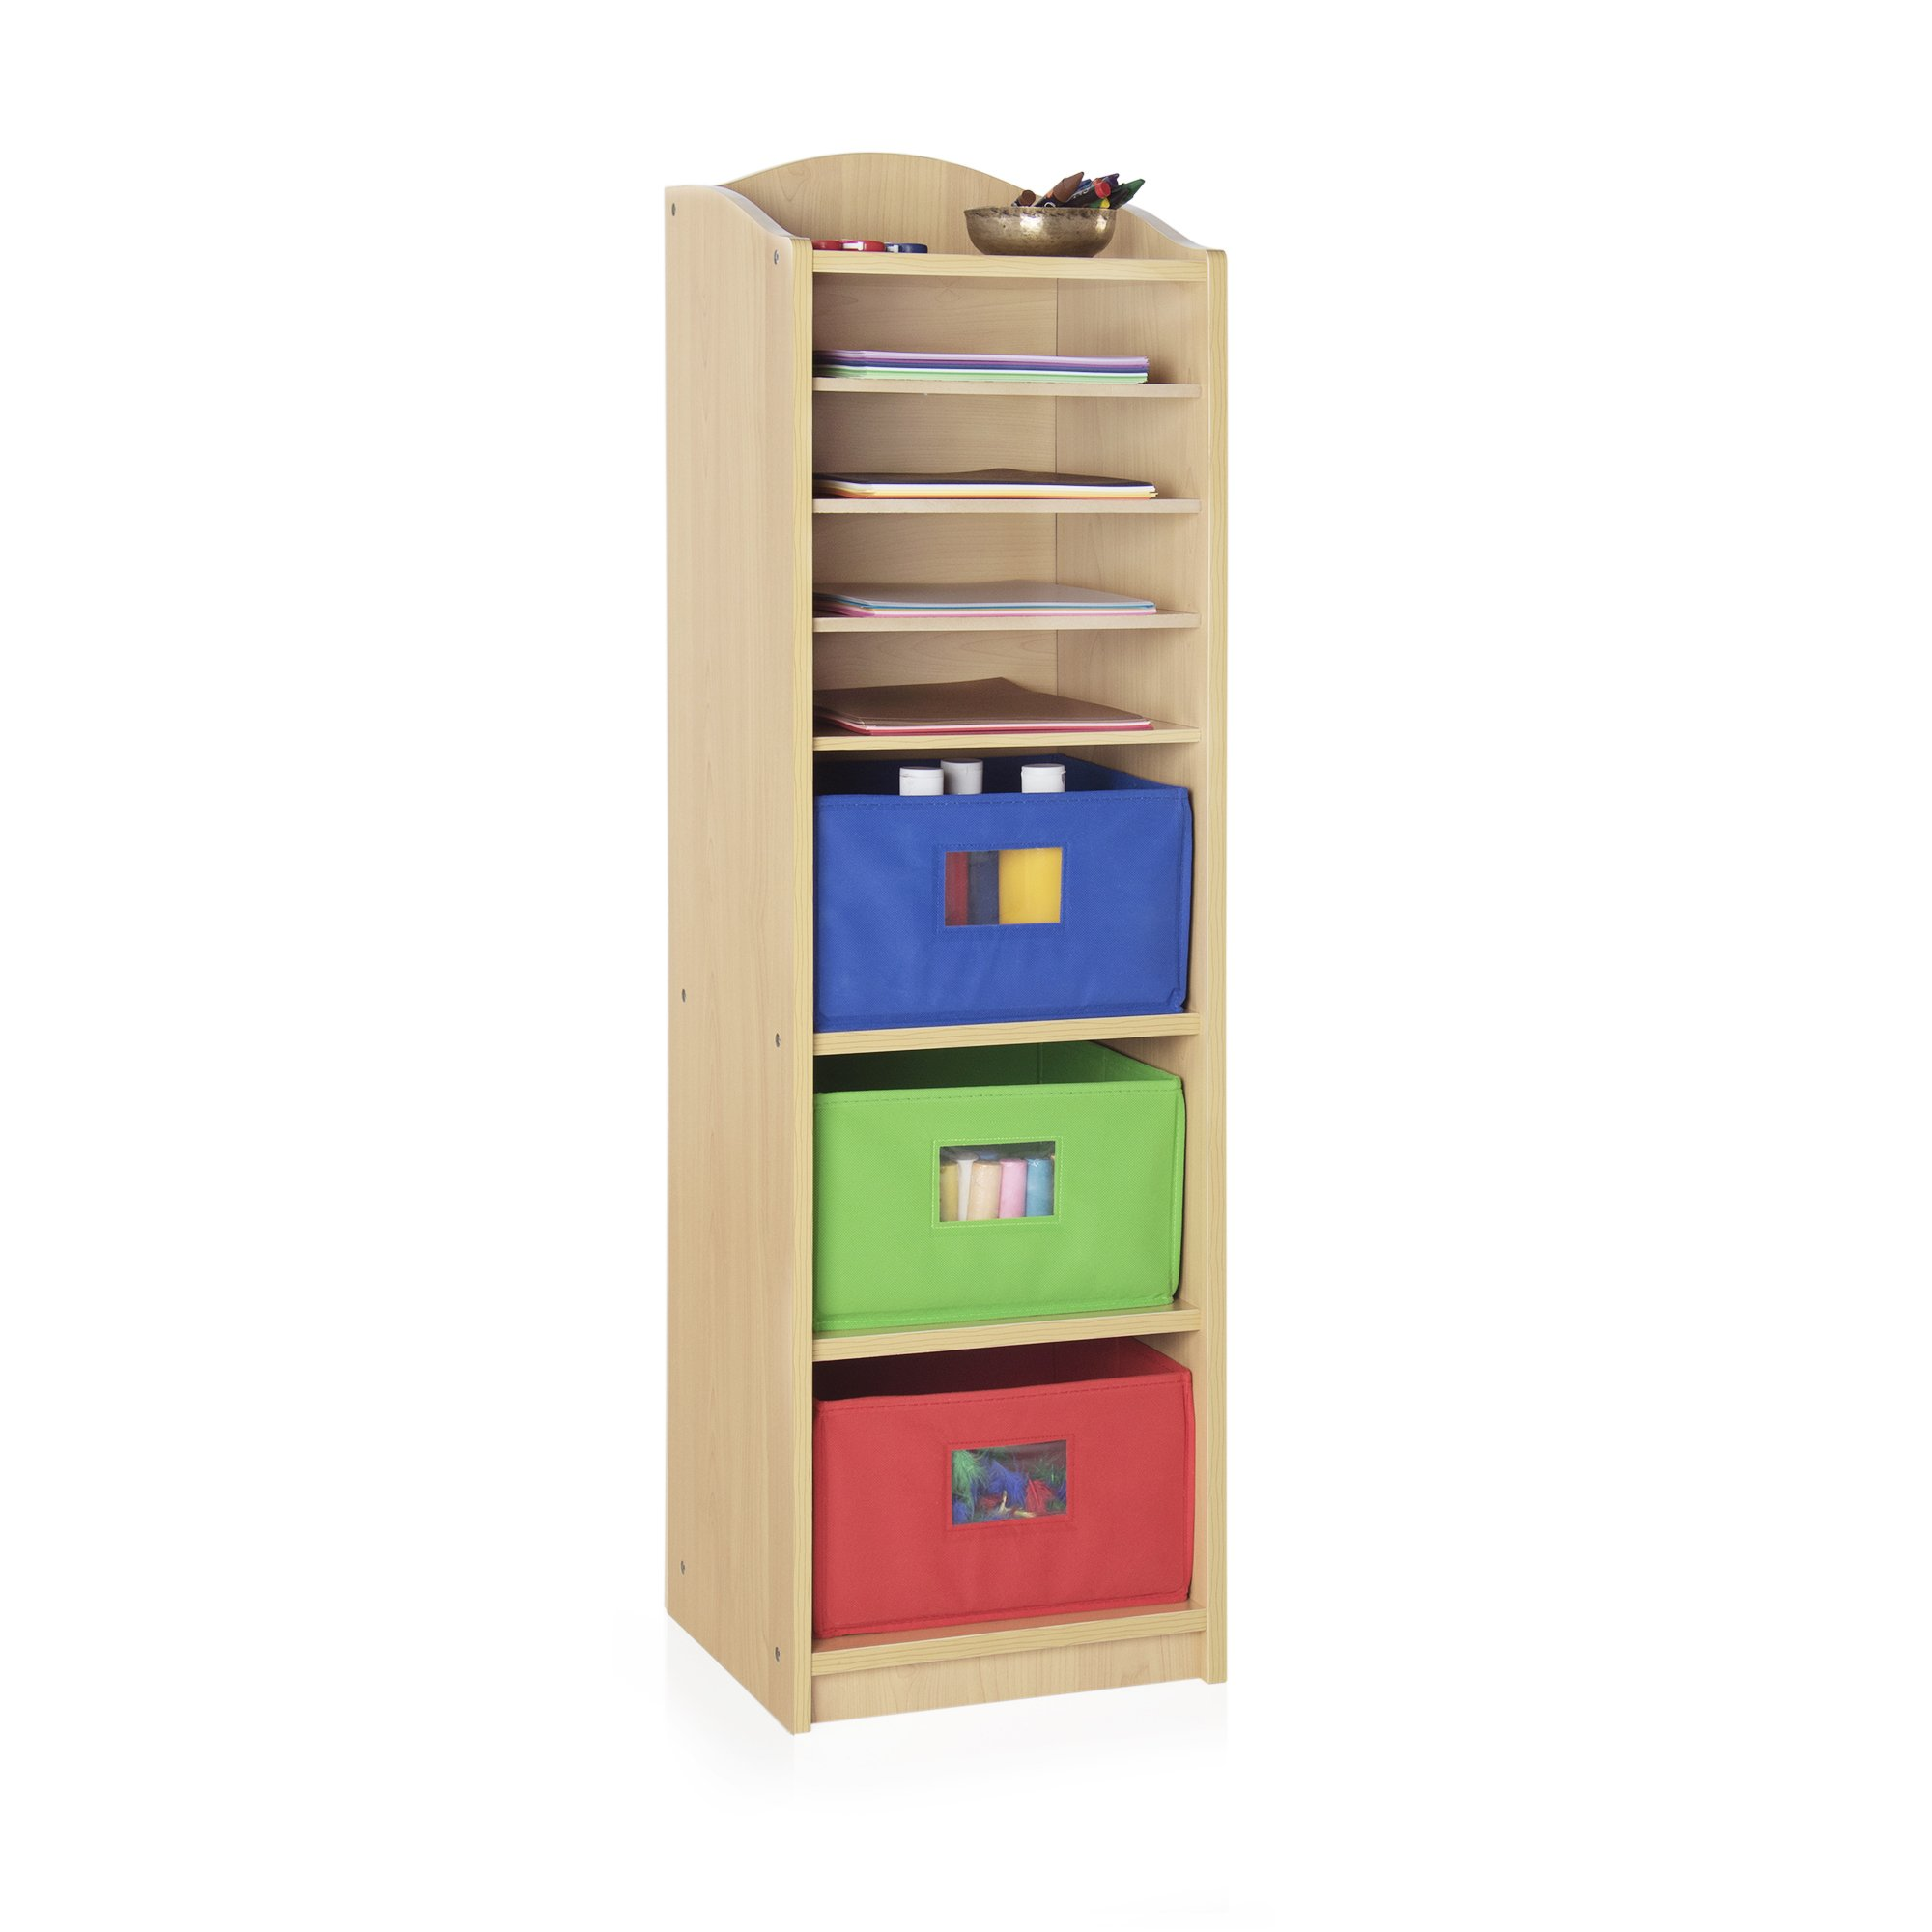 Guidecraft Narrow 3 Bin Storage Center - (Folding Colorful Bins Included) Tall Arts and Crafts Storage, School Supply Furniture, Kids Toy Organizer